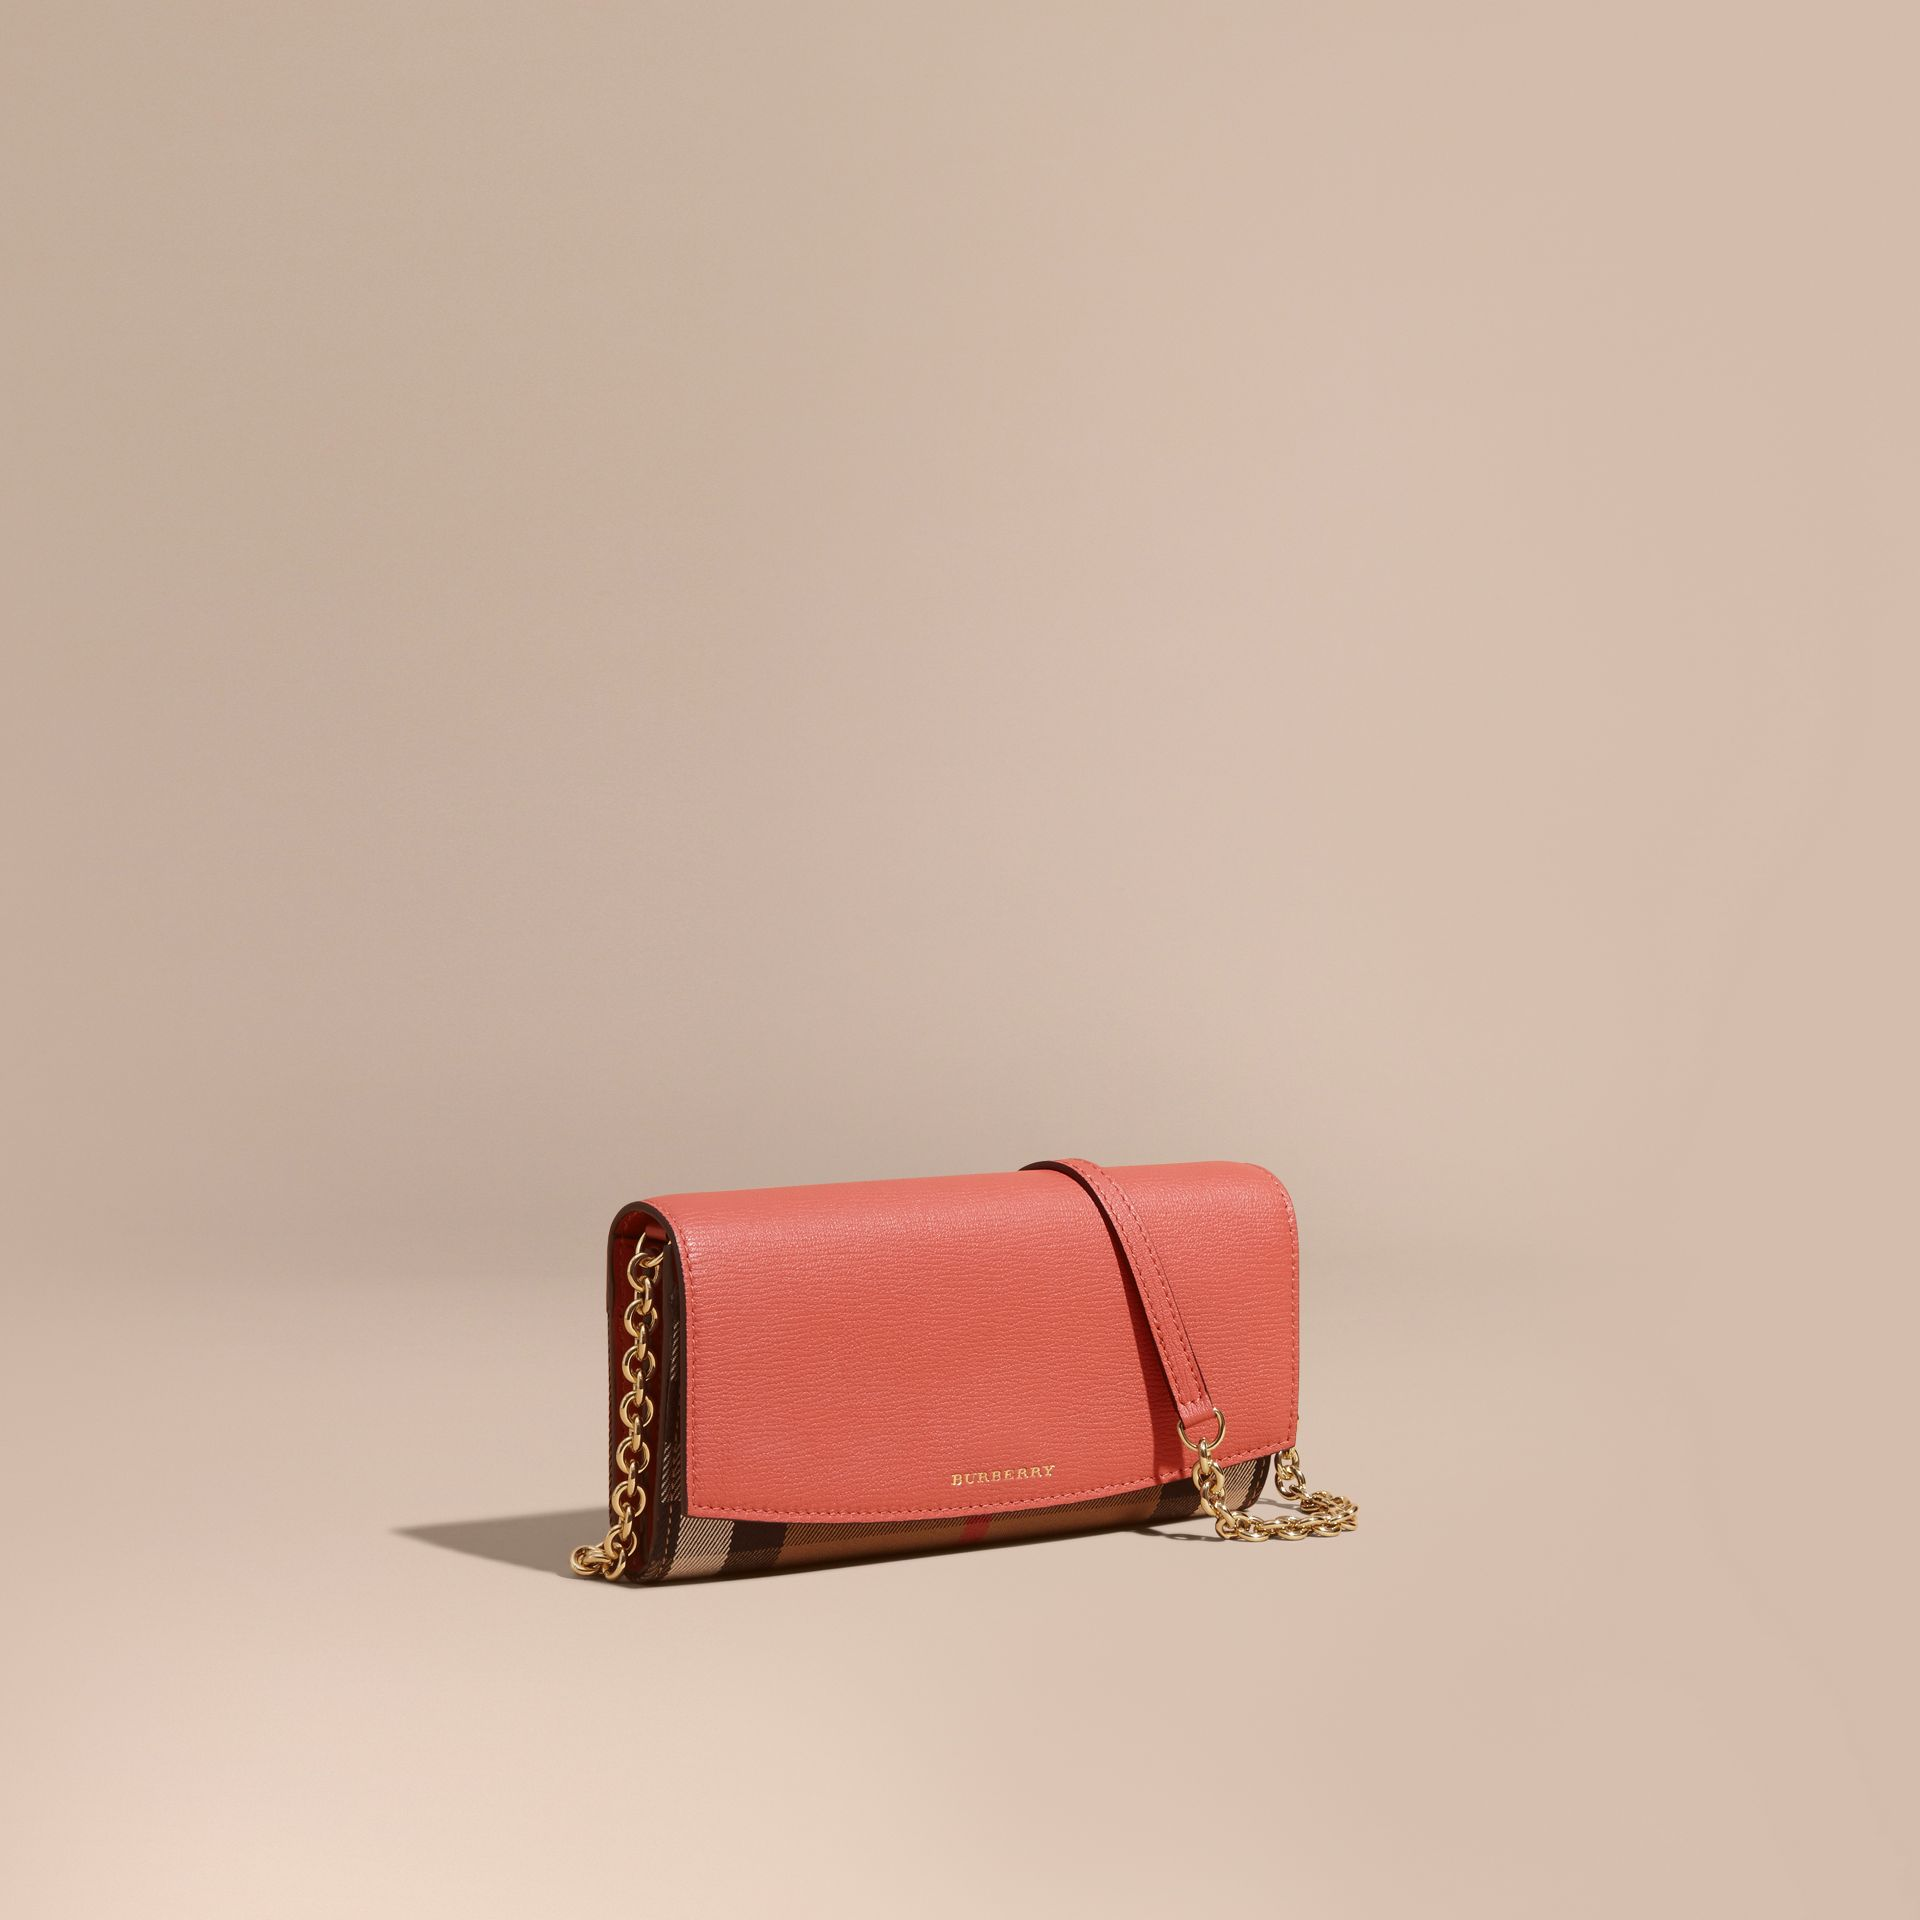 House Check and Leather Wallet with Chain in Cinnamon Red - Women | Burberry United Kingdom - gallery image 0